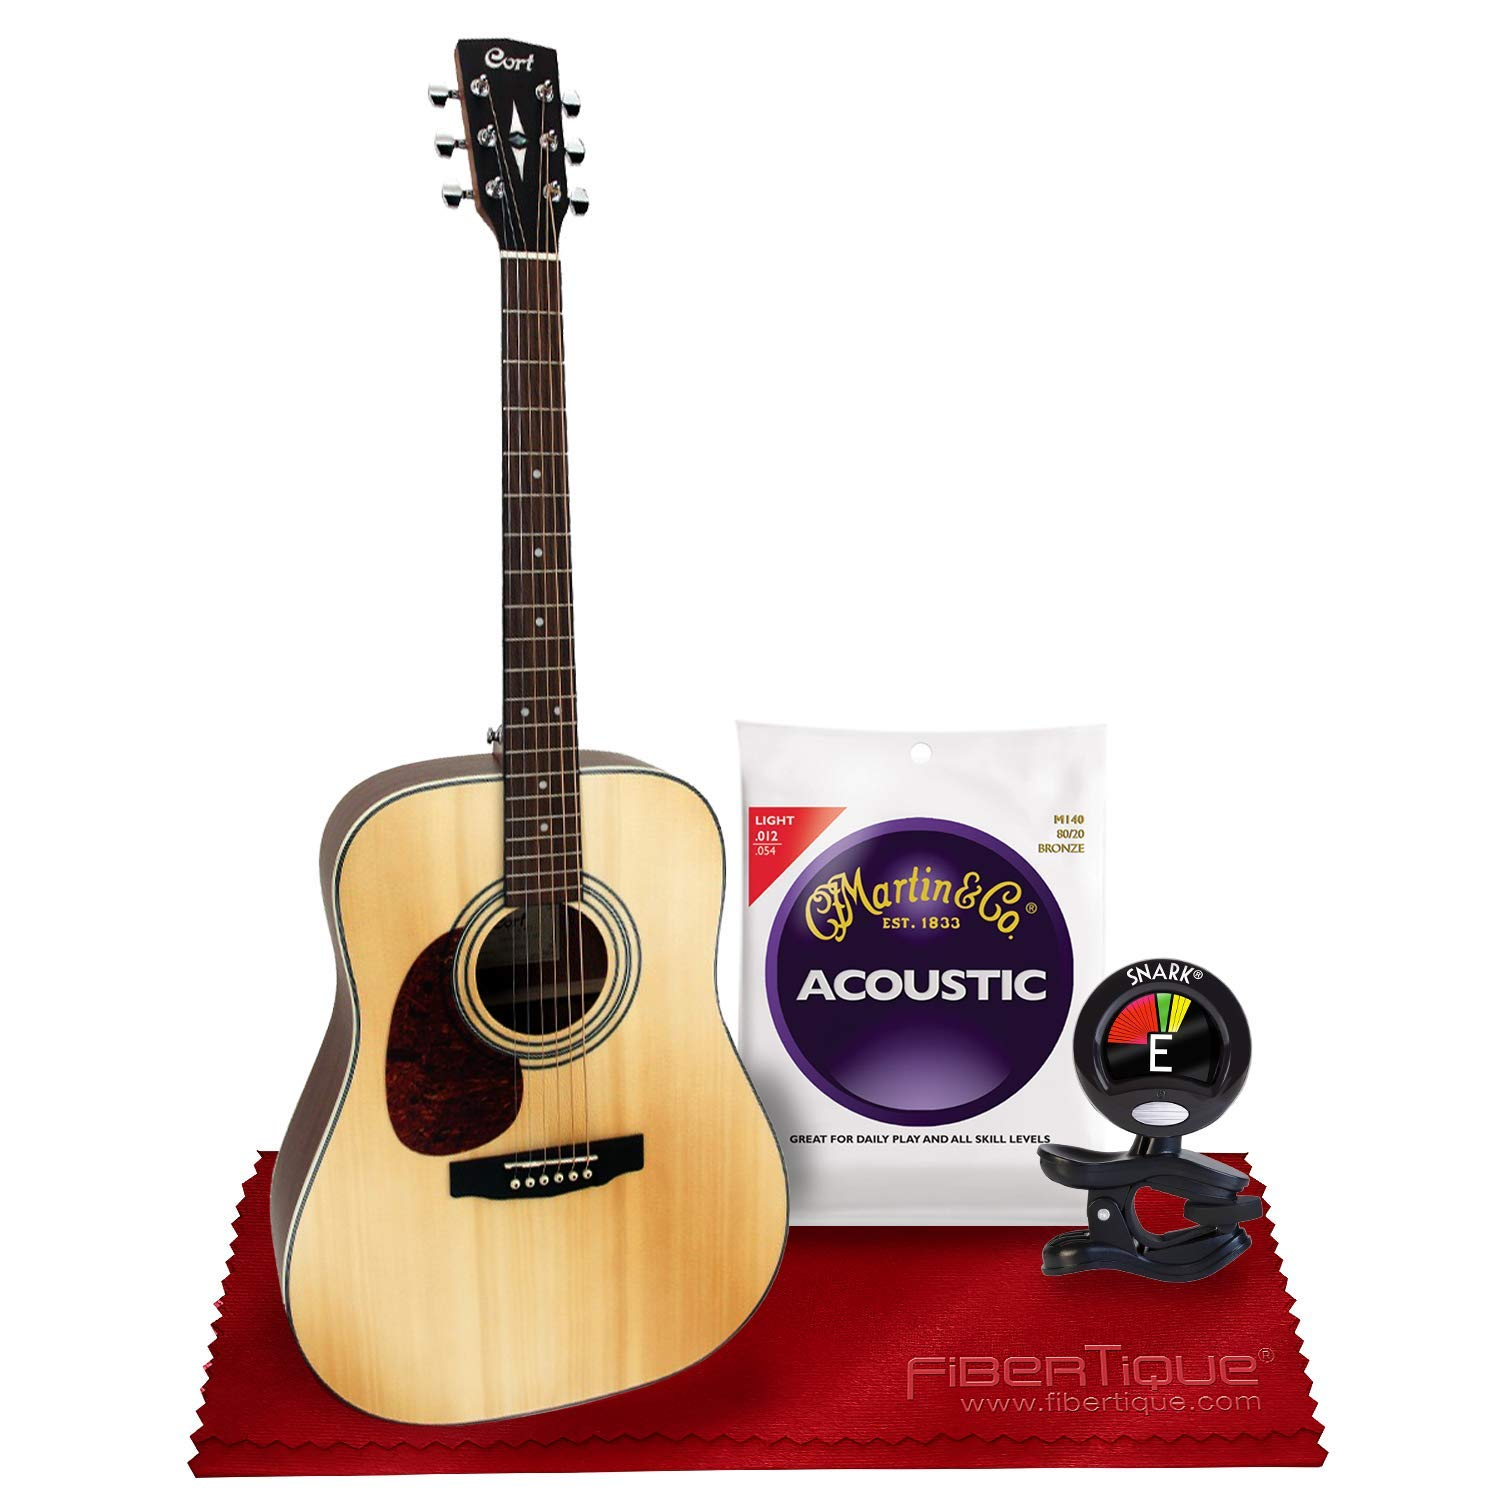 Cort Earth Series Earth70 Dreadnought Acoustic Guitar with Tuner, Strings, Picks Bundle by Cort